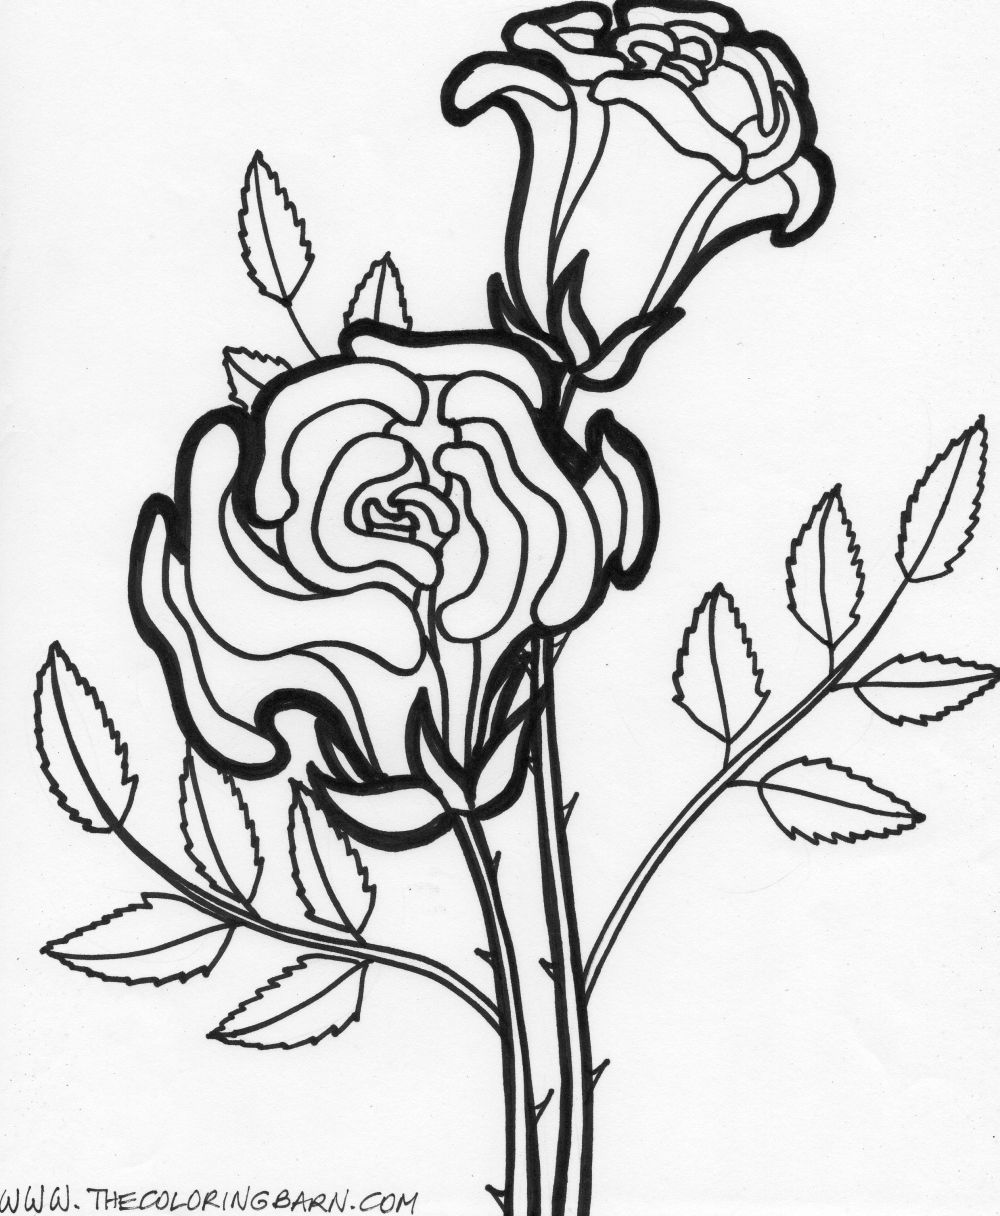 Coloring Pages Worksheets: Simple Flower Coloring Pages ... | colouring pages flowers